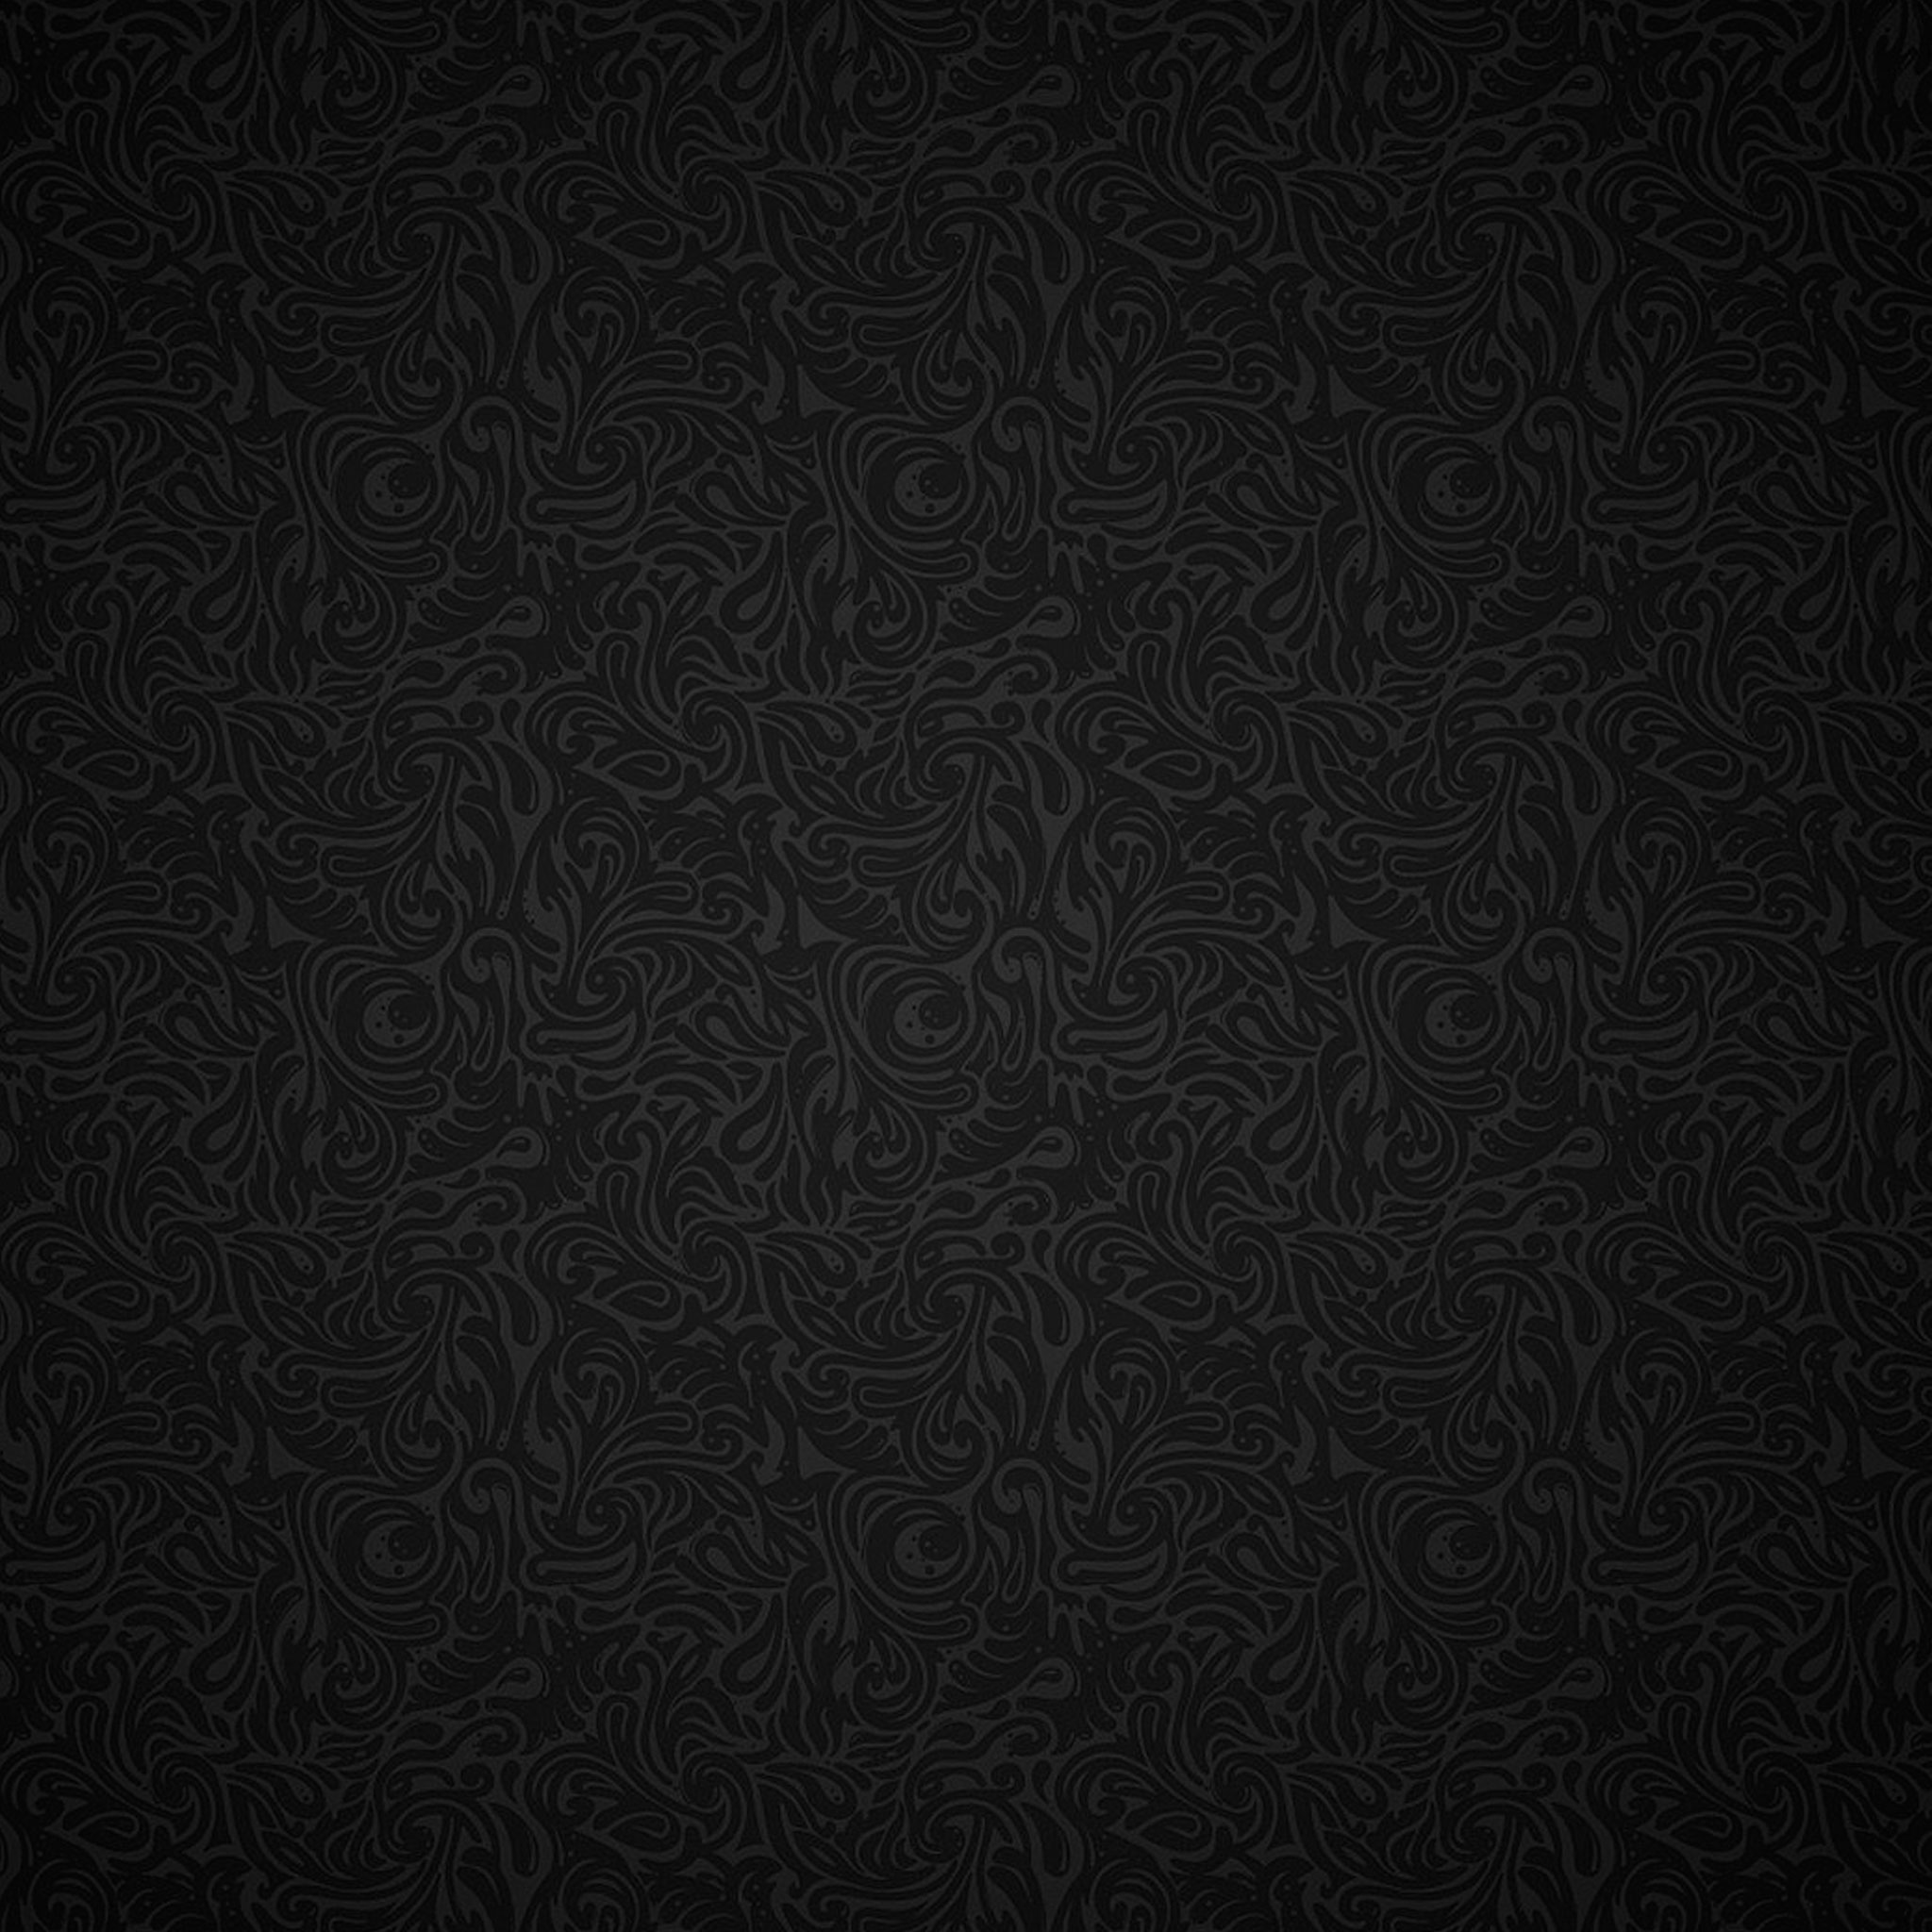 Blackground-3Wallpapers-iPad-Retina